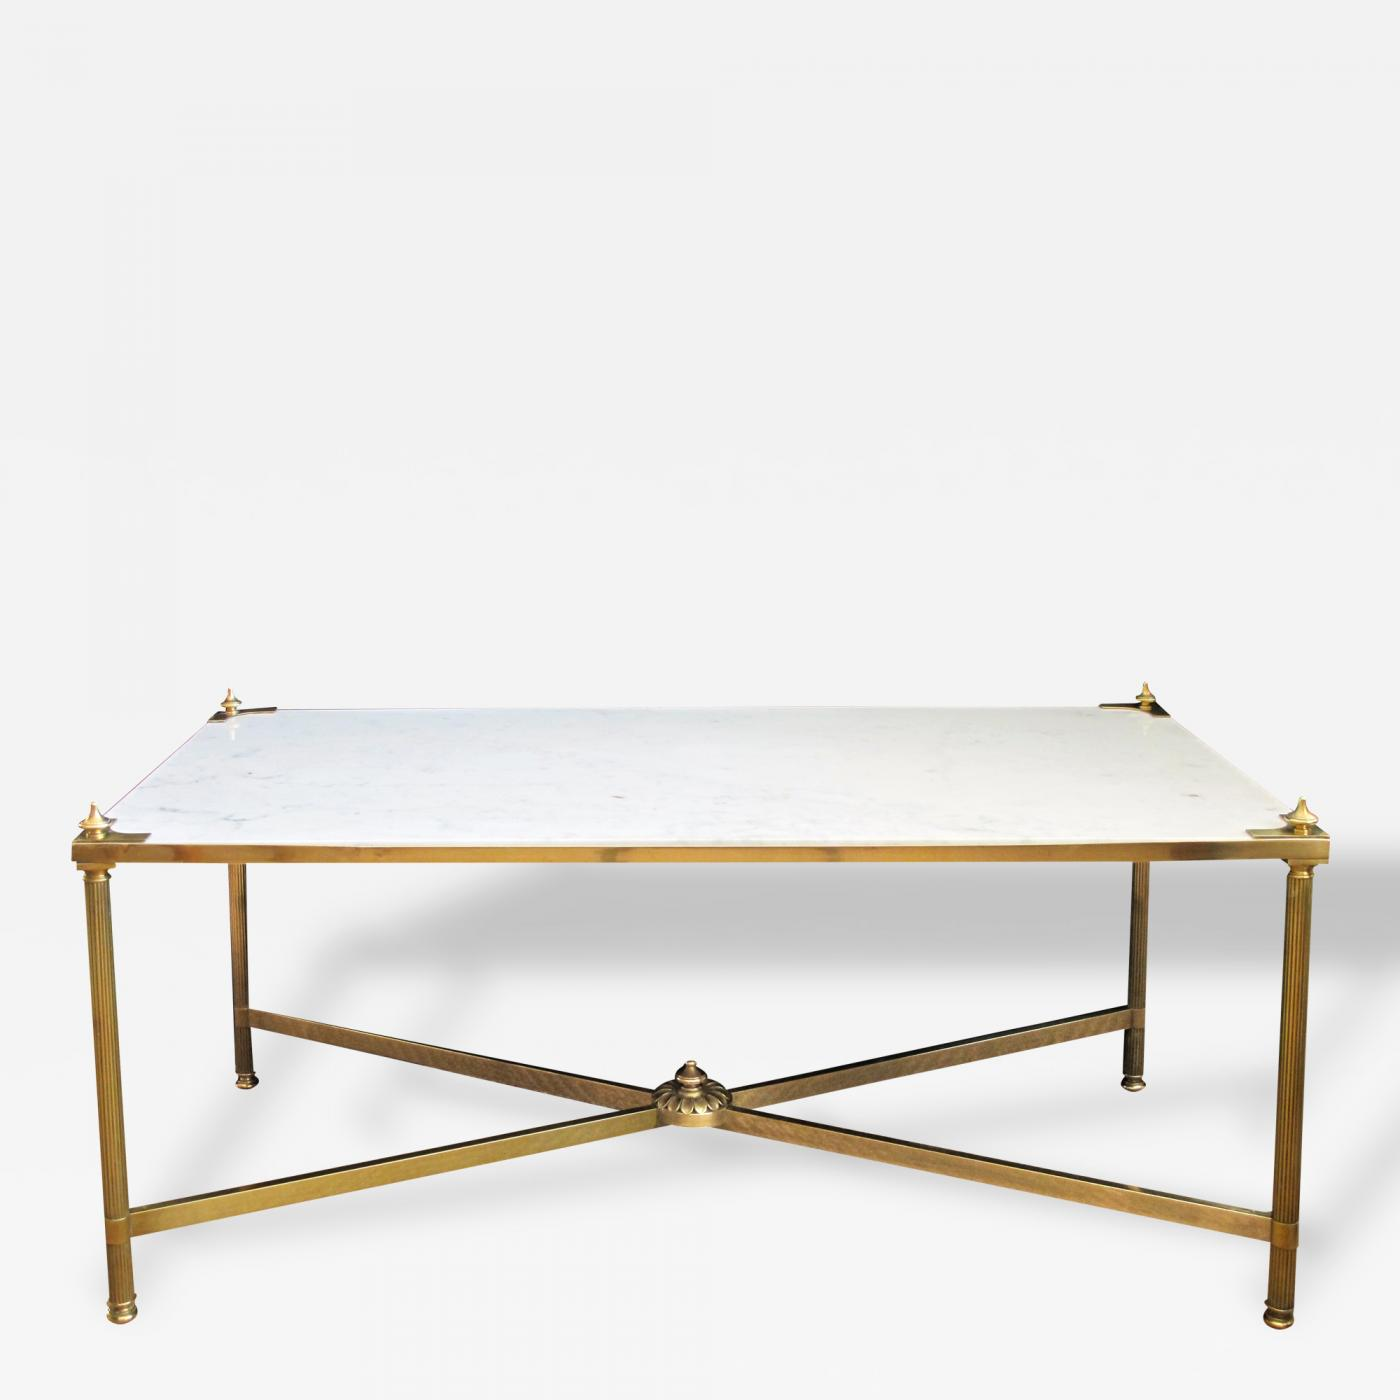 Maison Jansen An Elegant French Maison Jansen Neoclassical Style Brass Coffee Table